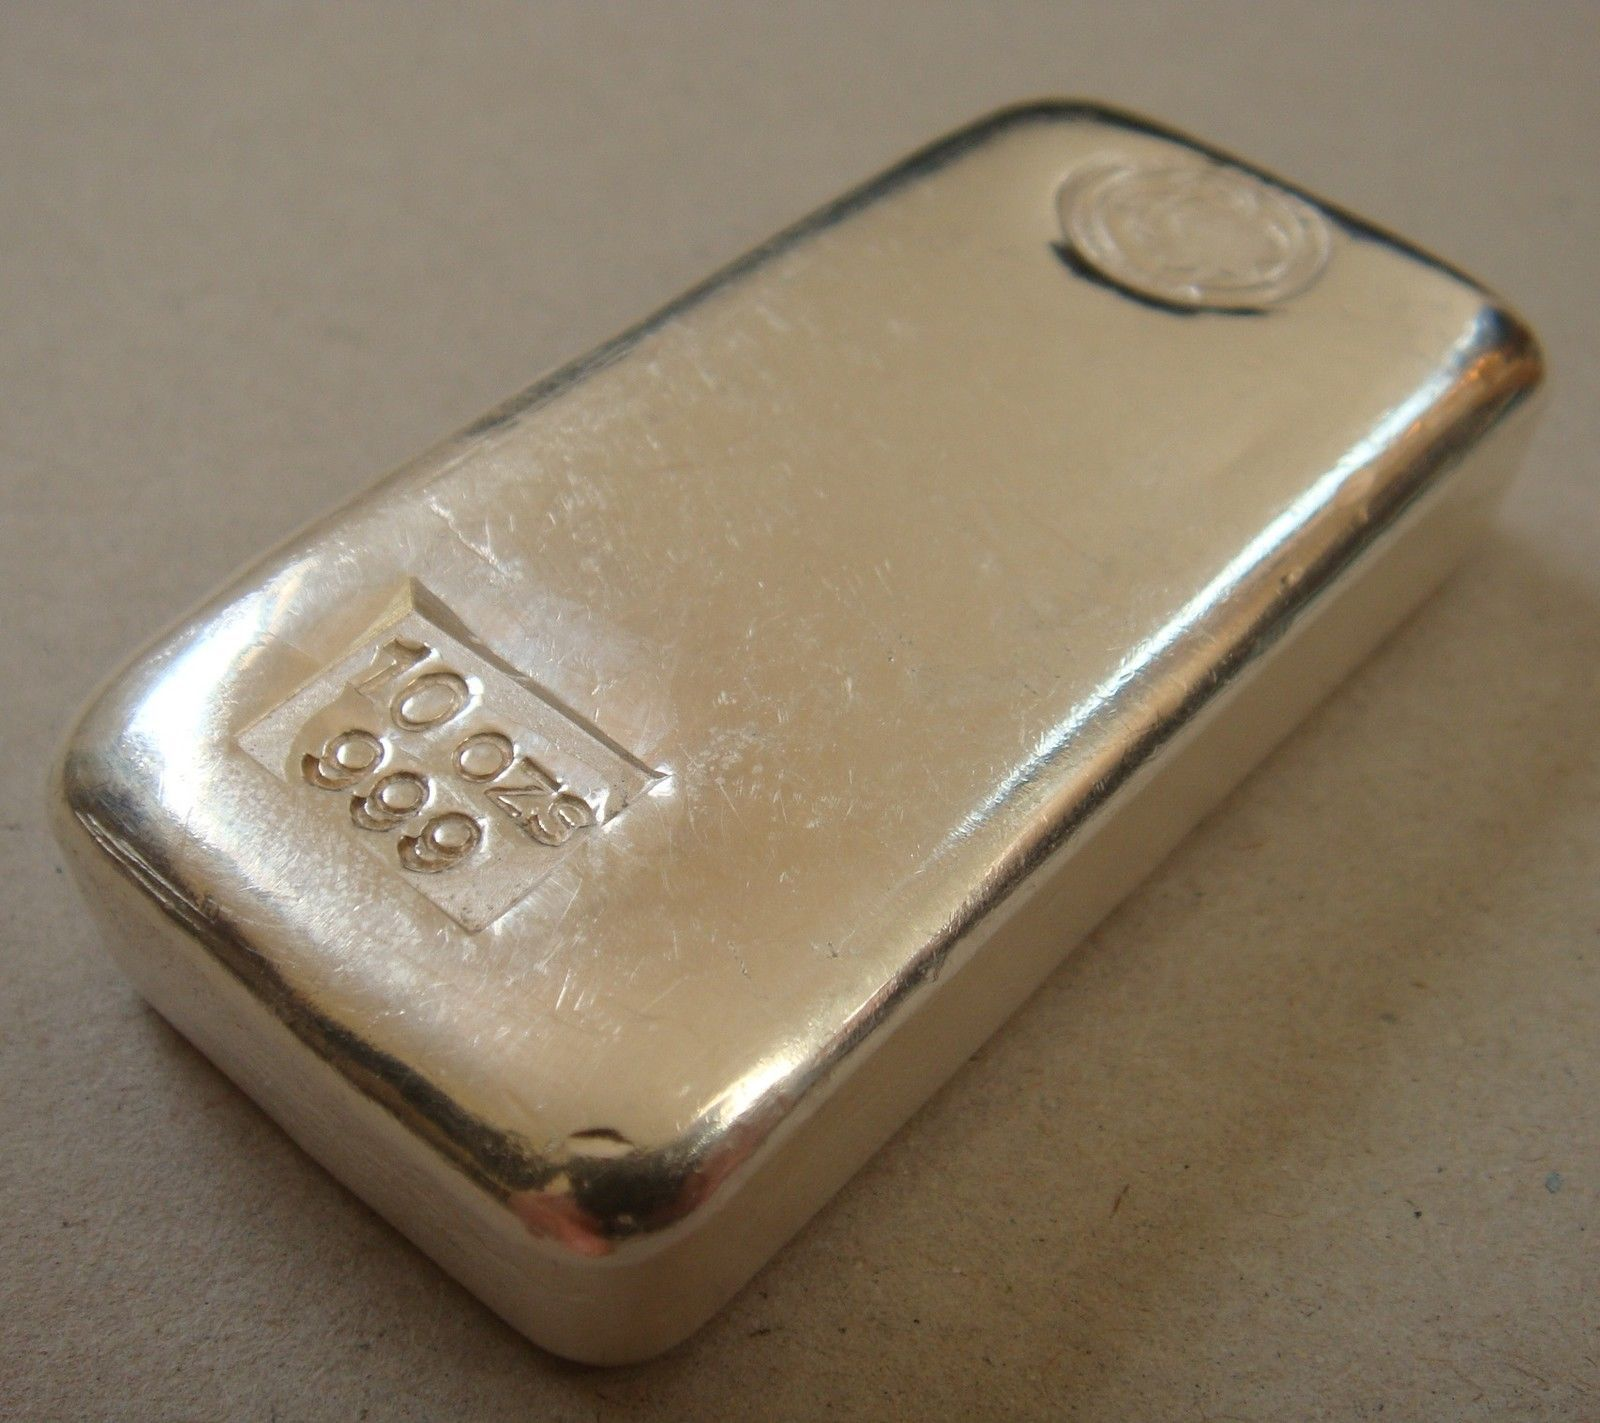 Perth Mint 10 Oz 999 Silver Bullion Bar Gold Bullion Bars Silver Bullion Gold Bullion